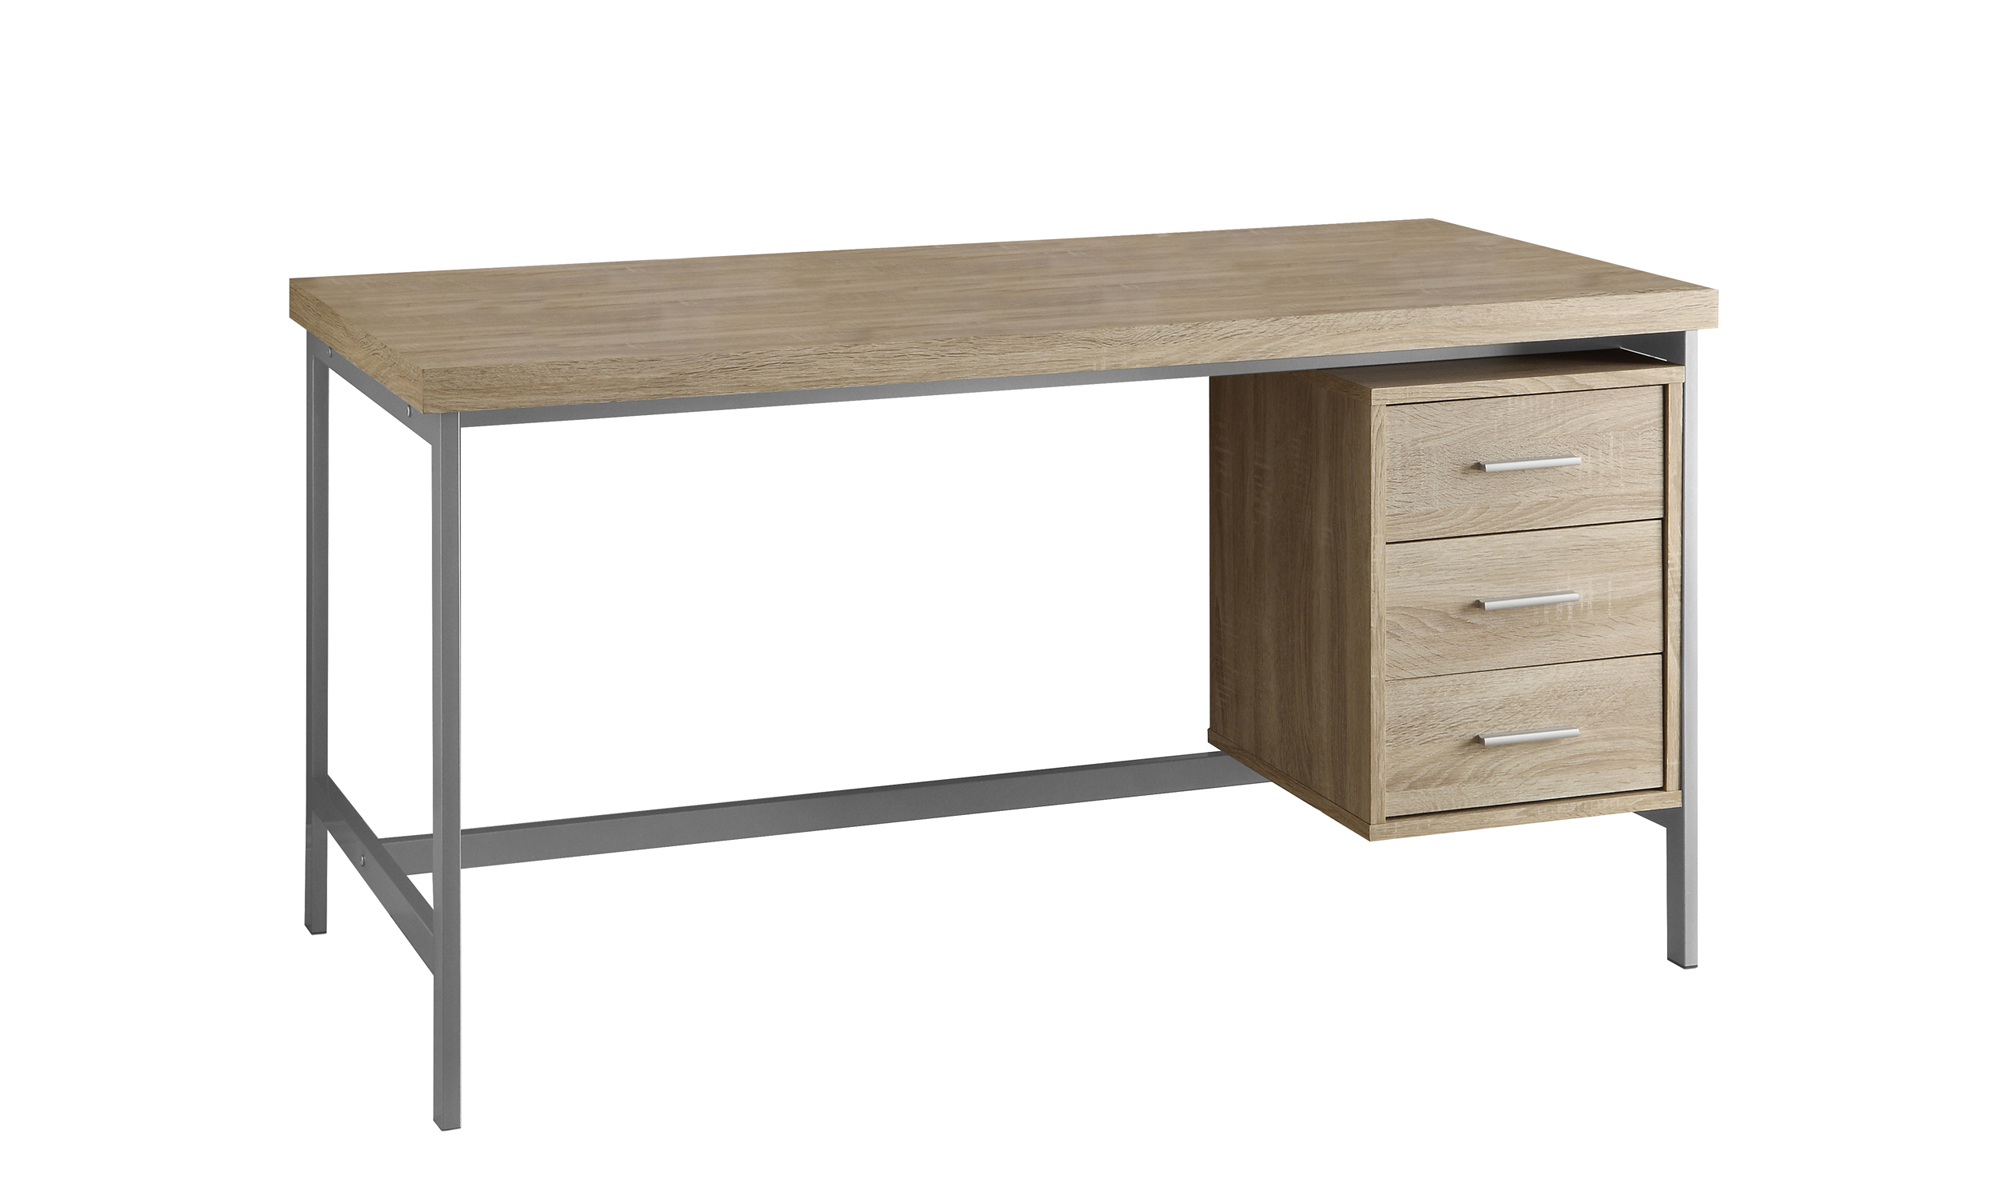 "60"" 3 Drawer Natural Reclaimed Wood-Look Hollow-Core Desk, Natural With Silver Metal"